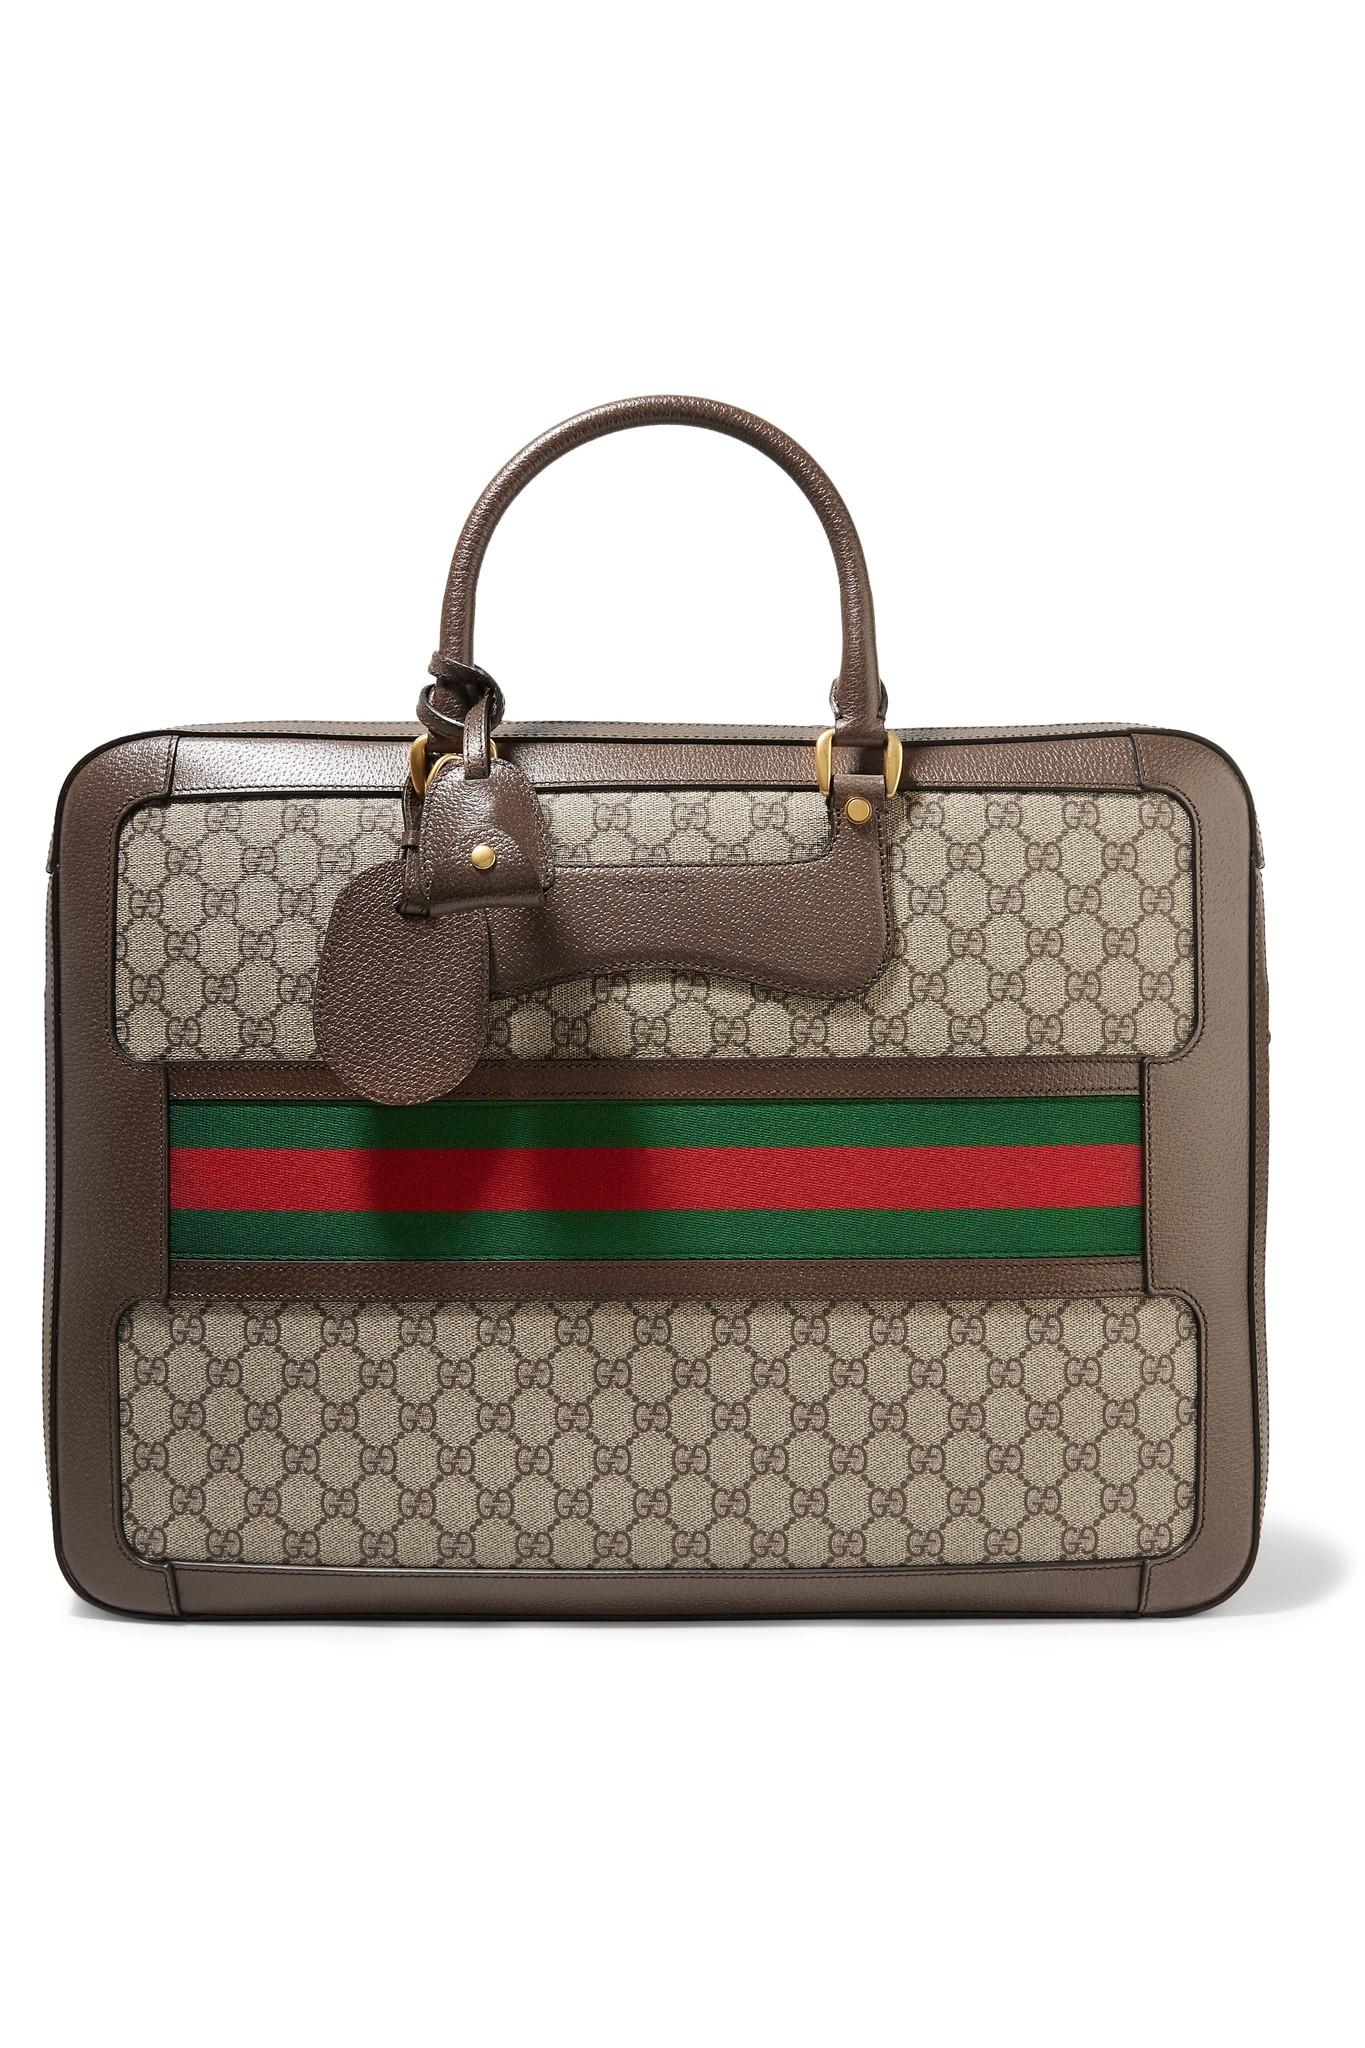 Echo Small Leather-trimmed Coated-canvas Suitcase - Brown Gucci 2TNfxIT